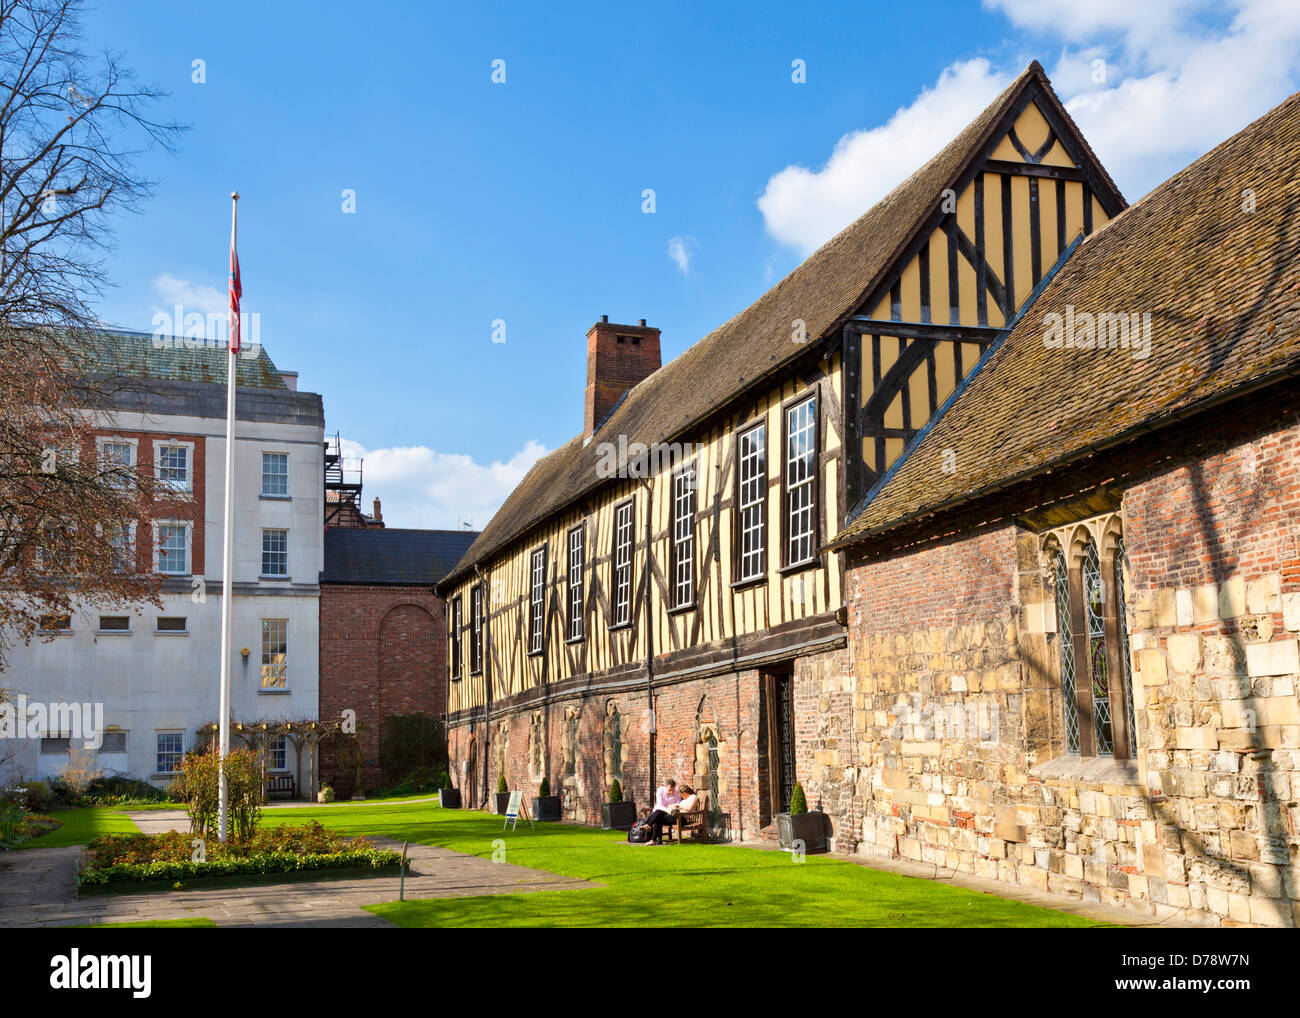 The Merchant Adventurers' Hall is a medieval guildhall in the city of York North Yorkshire England UK GB EU - Stock Image